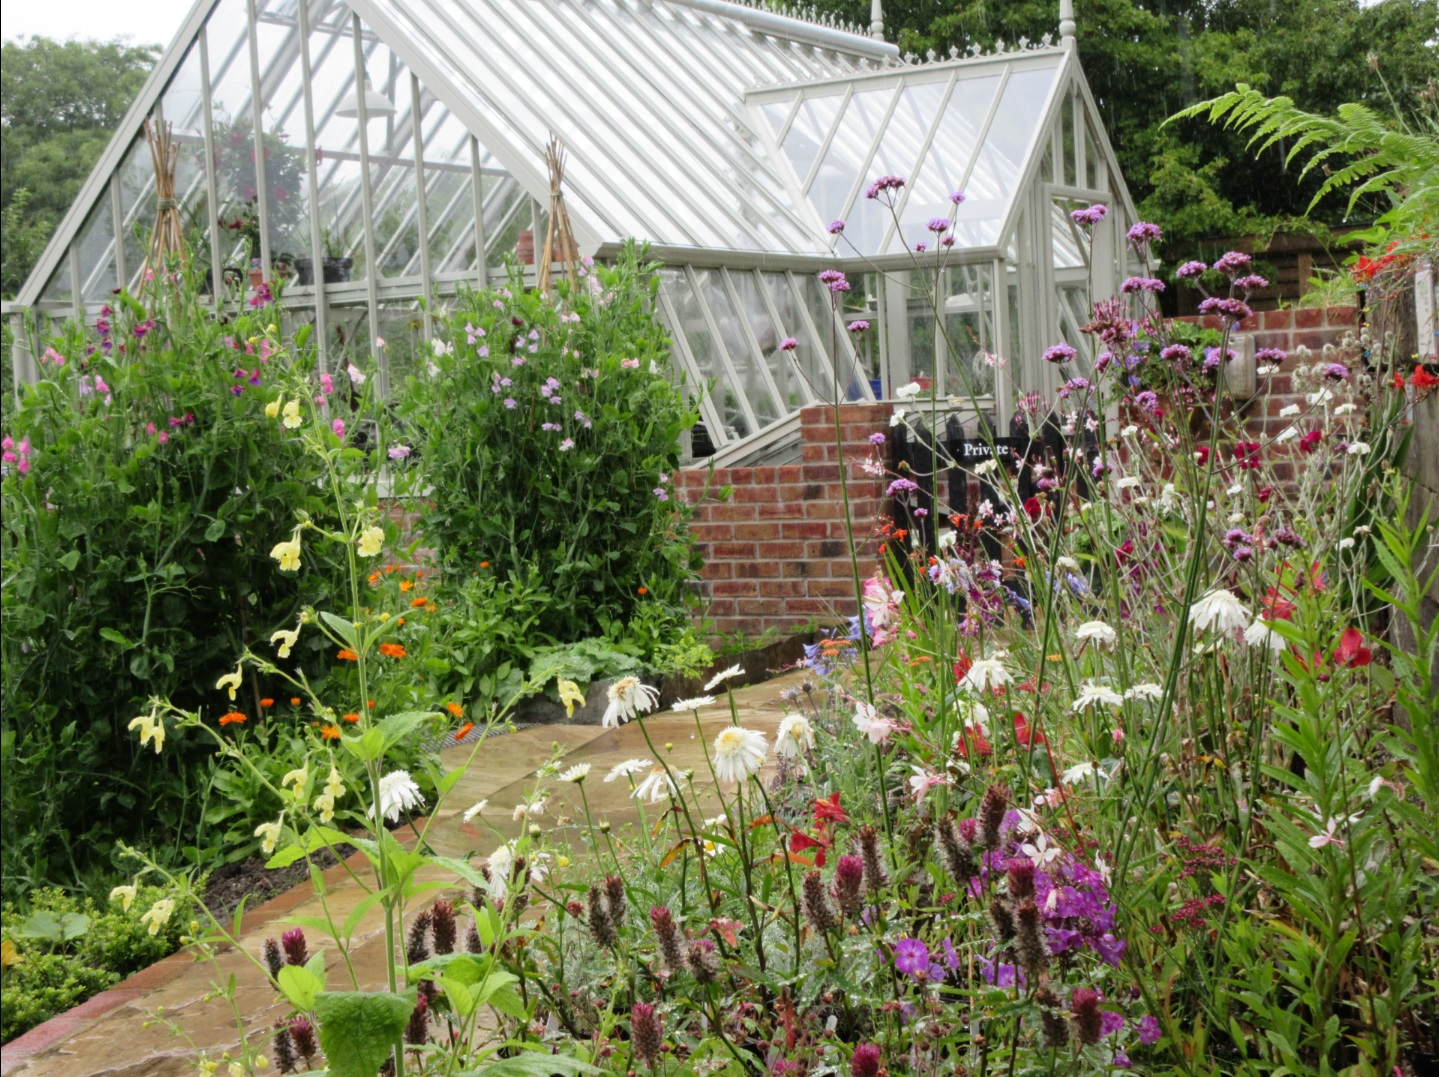 The glasshouse at Docton Mill Gardens and Tearoom, Hartland